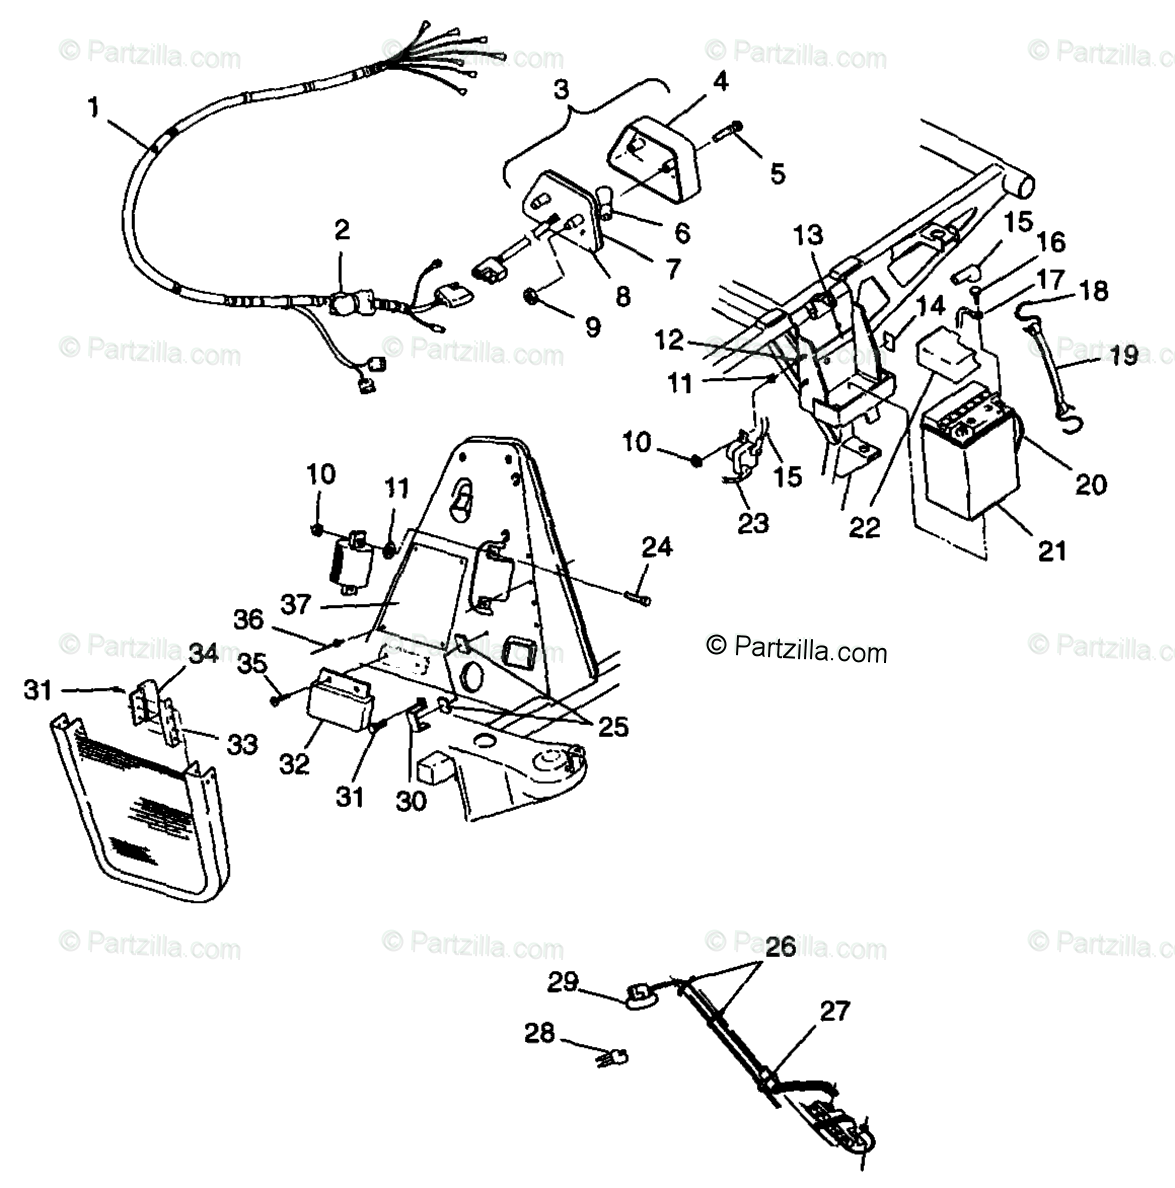 Polaris ATV 1998 OEM Parts Diagram for Electrical